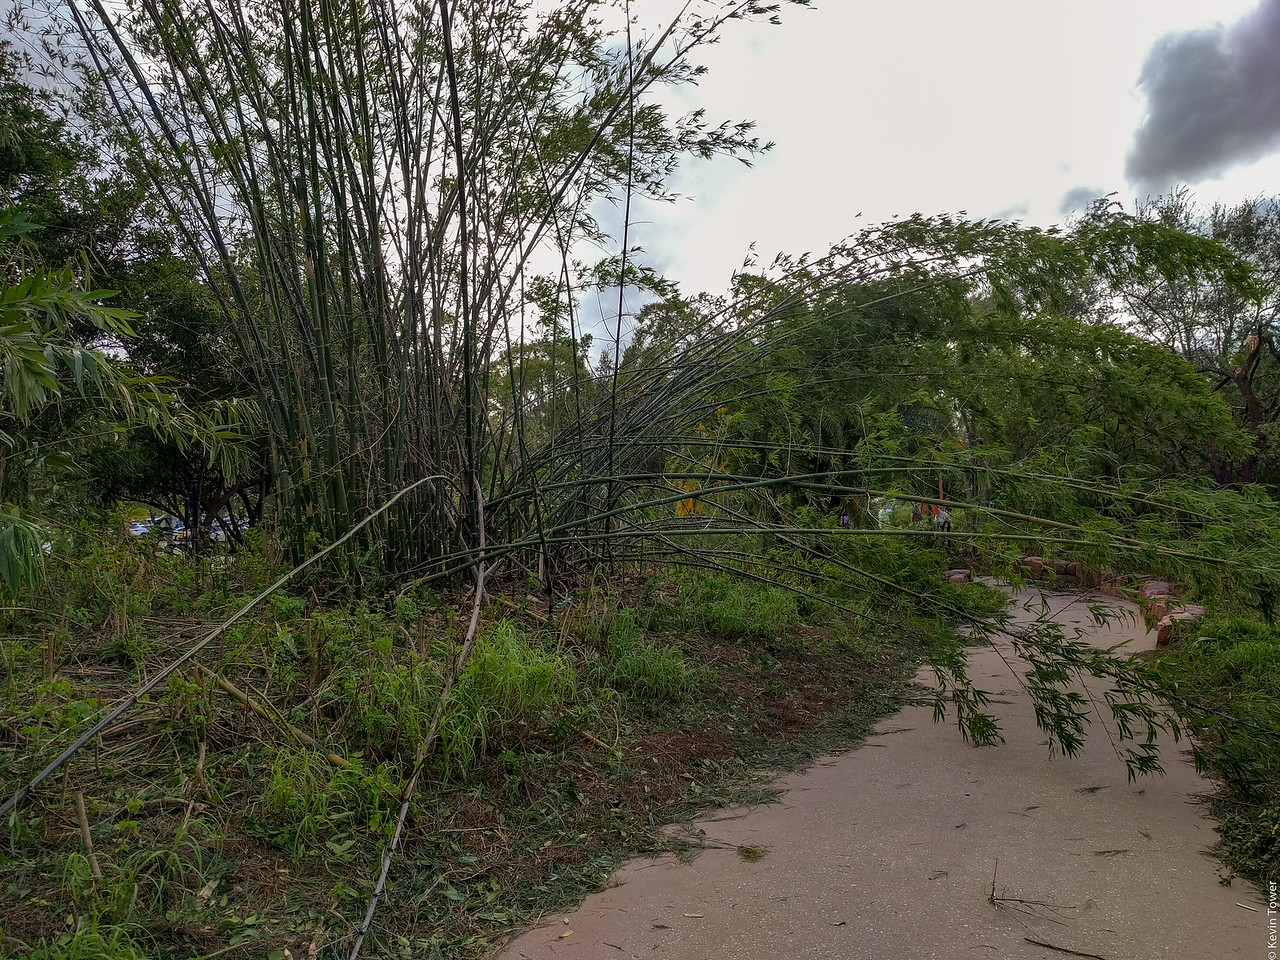 Downed bamboo